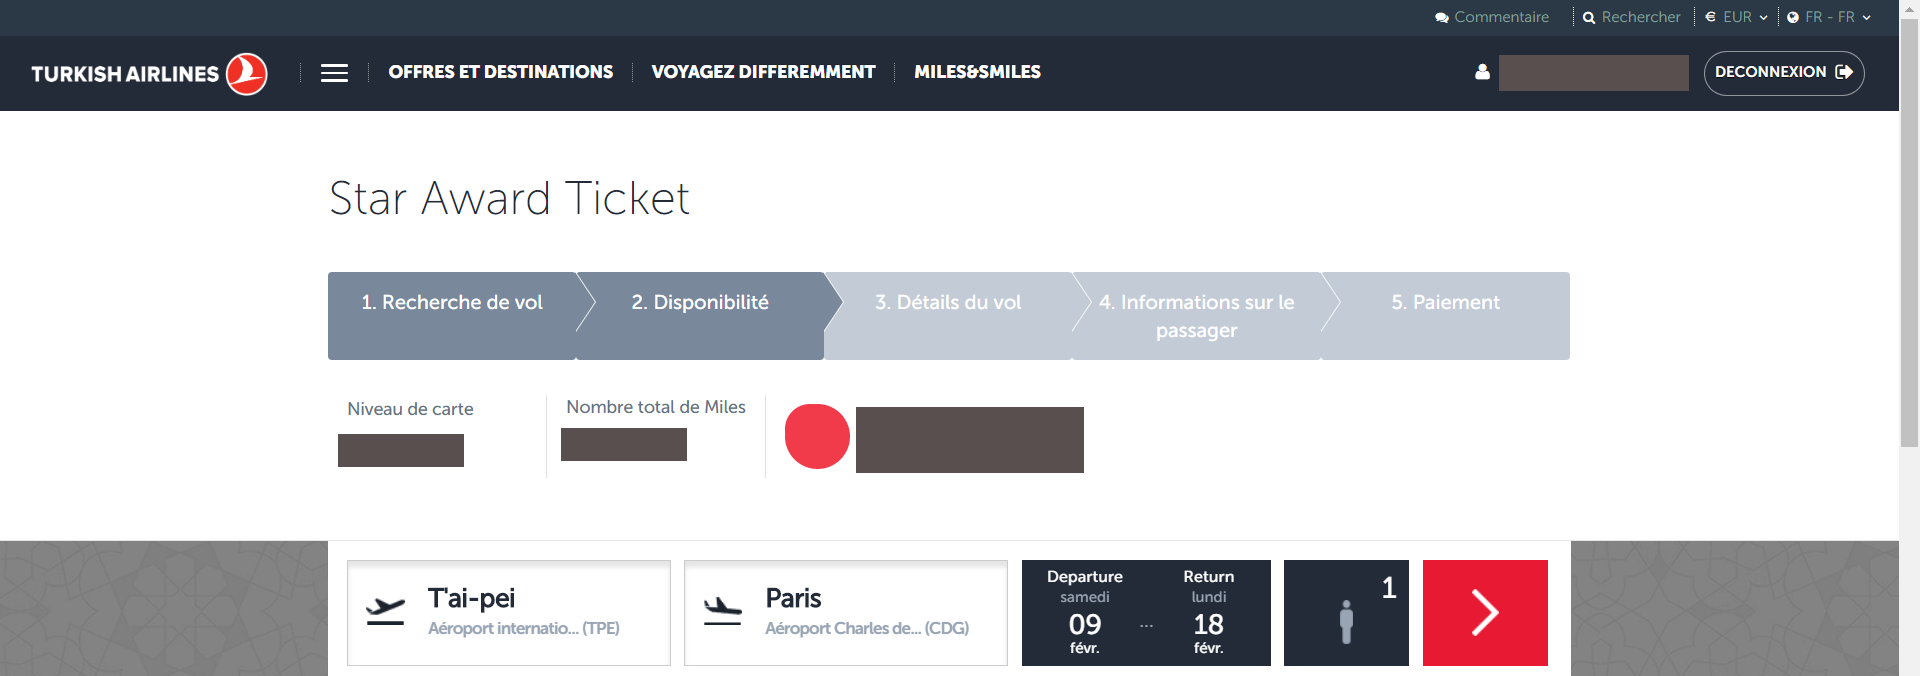 Star Alliance awards available on TK website - FlyerTalk Forums